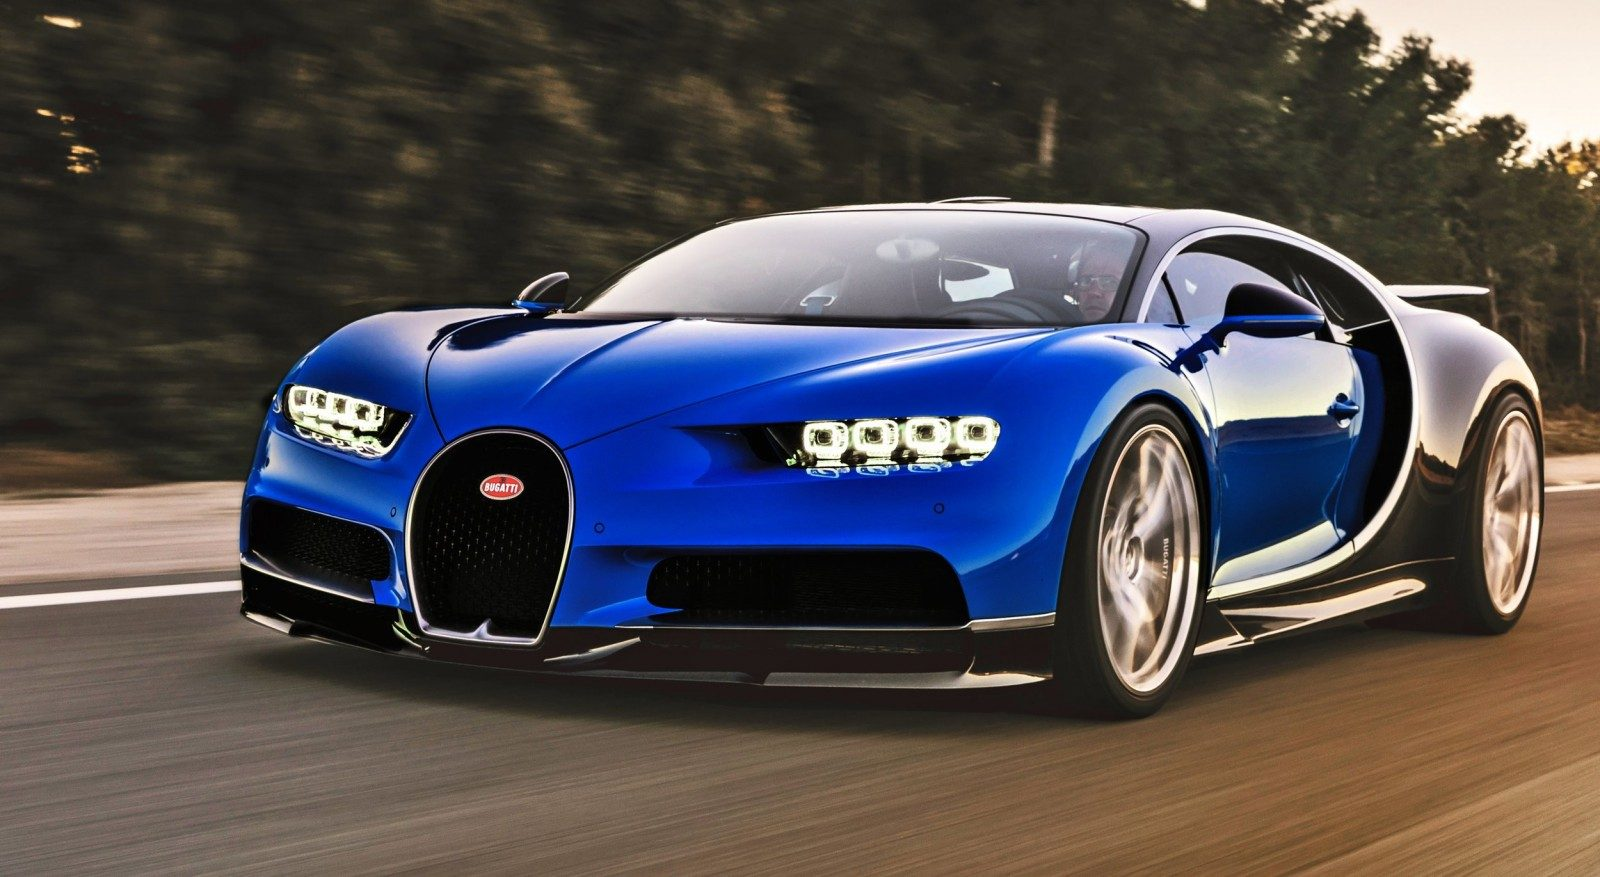 2017 bugatti chiron colors visualizer 50 shades of 300mph boss. Black Bedroom Furniture Sets. Home Design Ideas